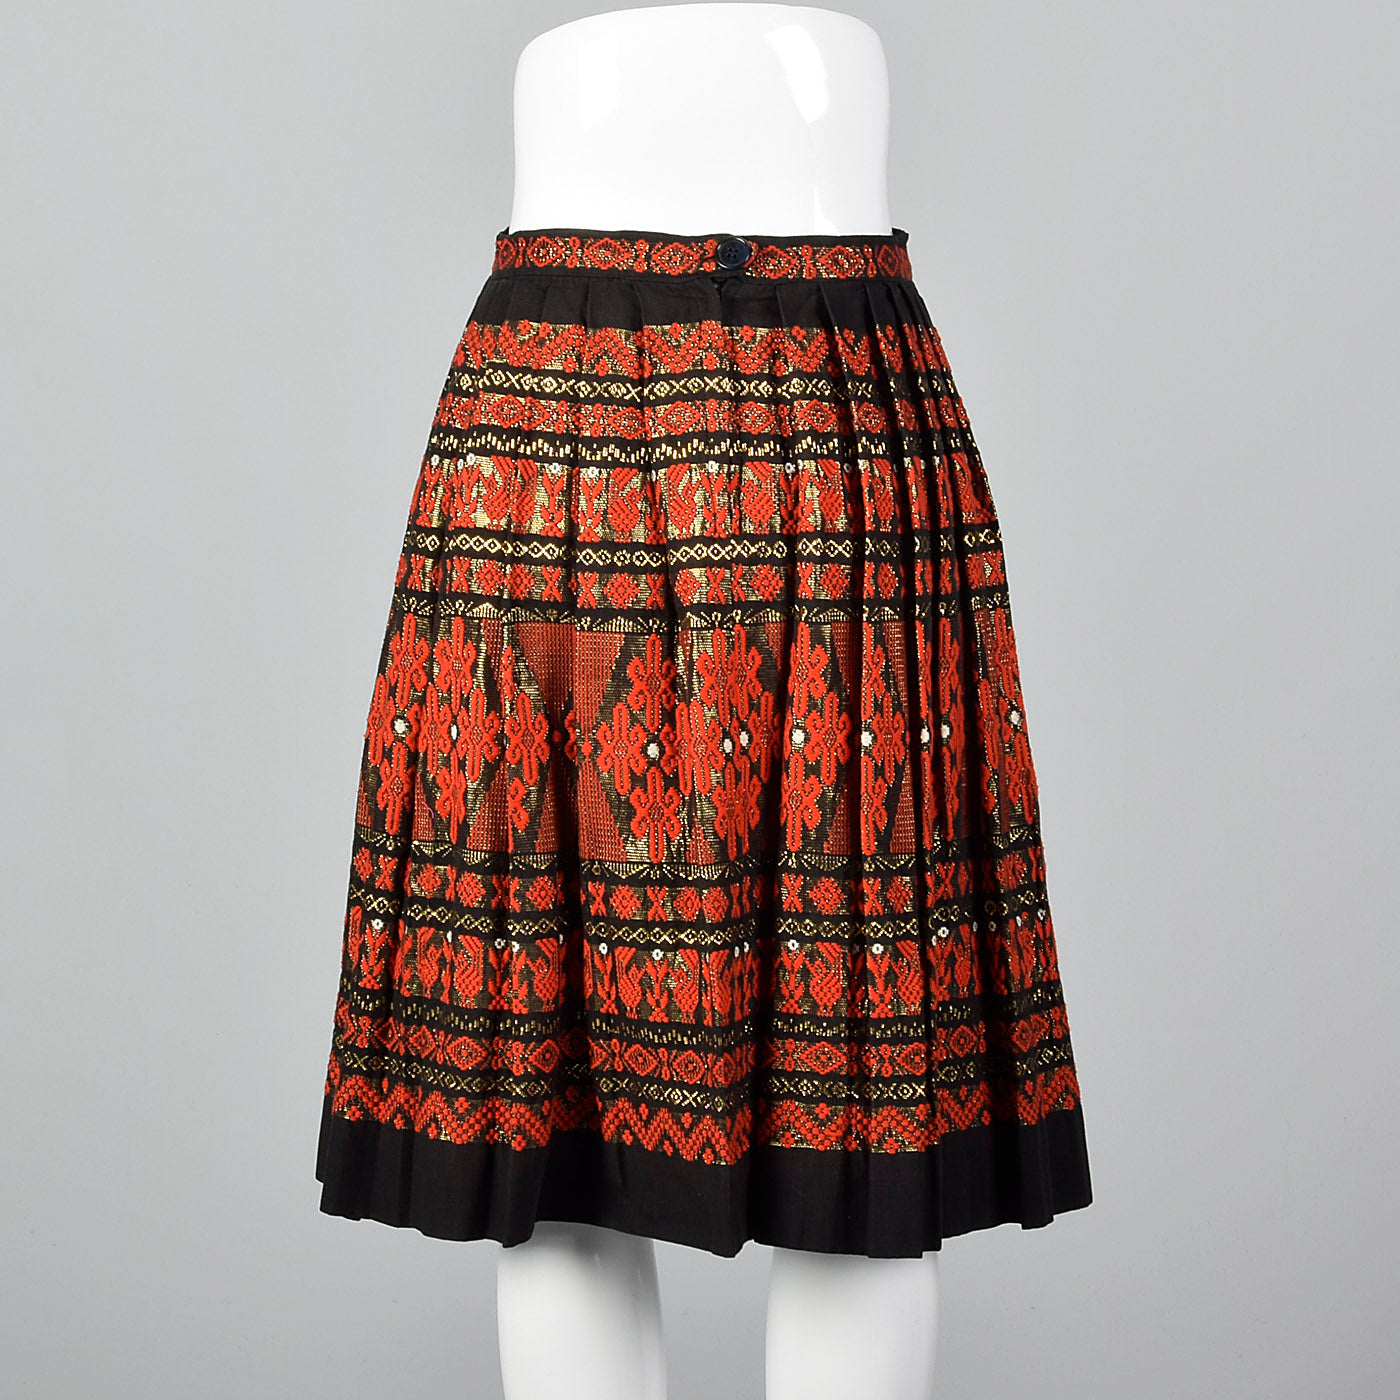 1950s Pleated Black Skirt with Red and Metallic Embroidery